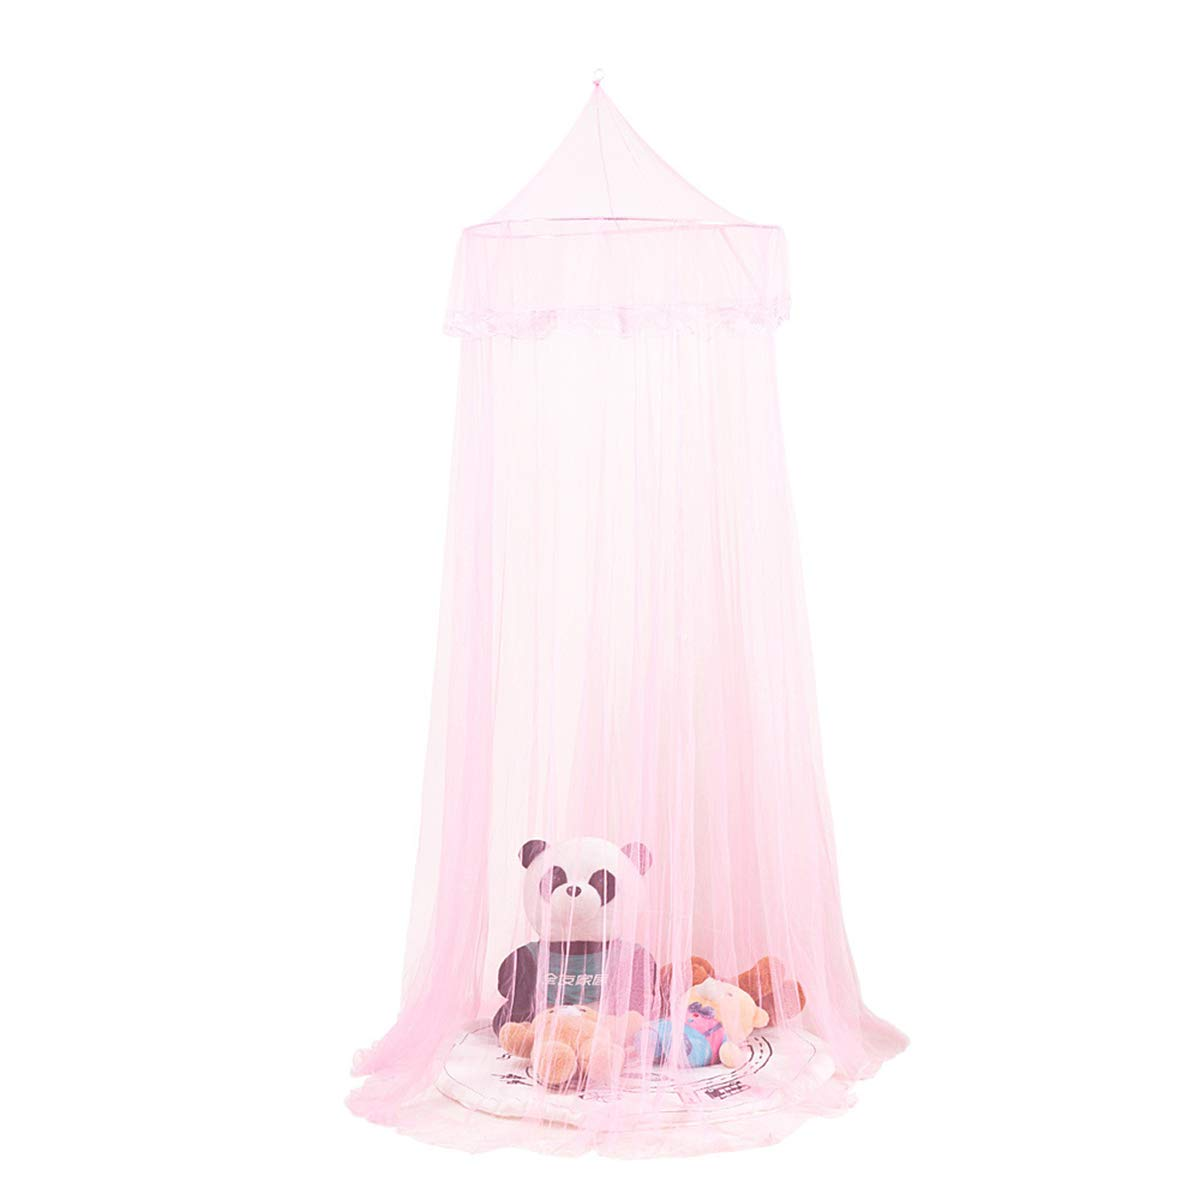 Yunnyp Dome Insect Net Tent Ceiling Princess Bed Curtain,Bed Canopy Lace Netting Mesh Drape Cover for Princess Bedding